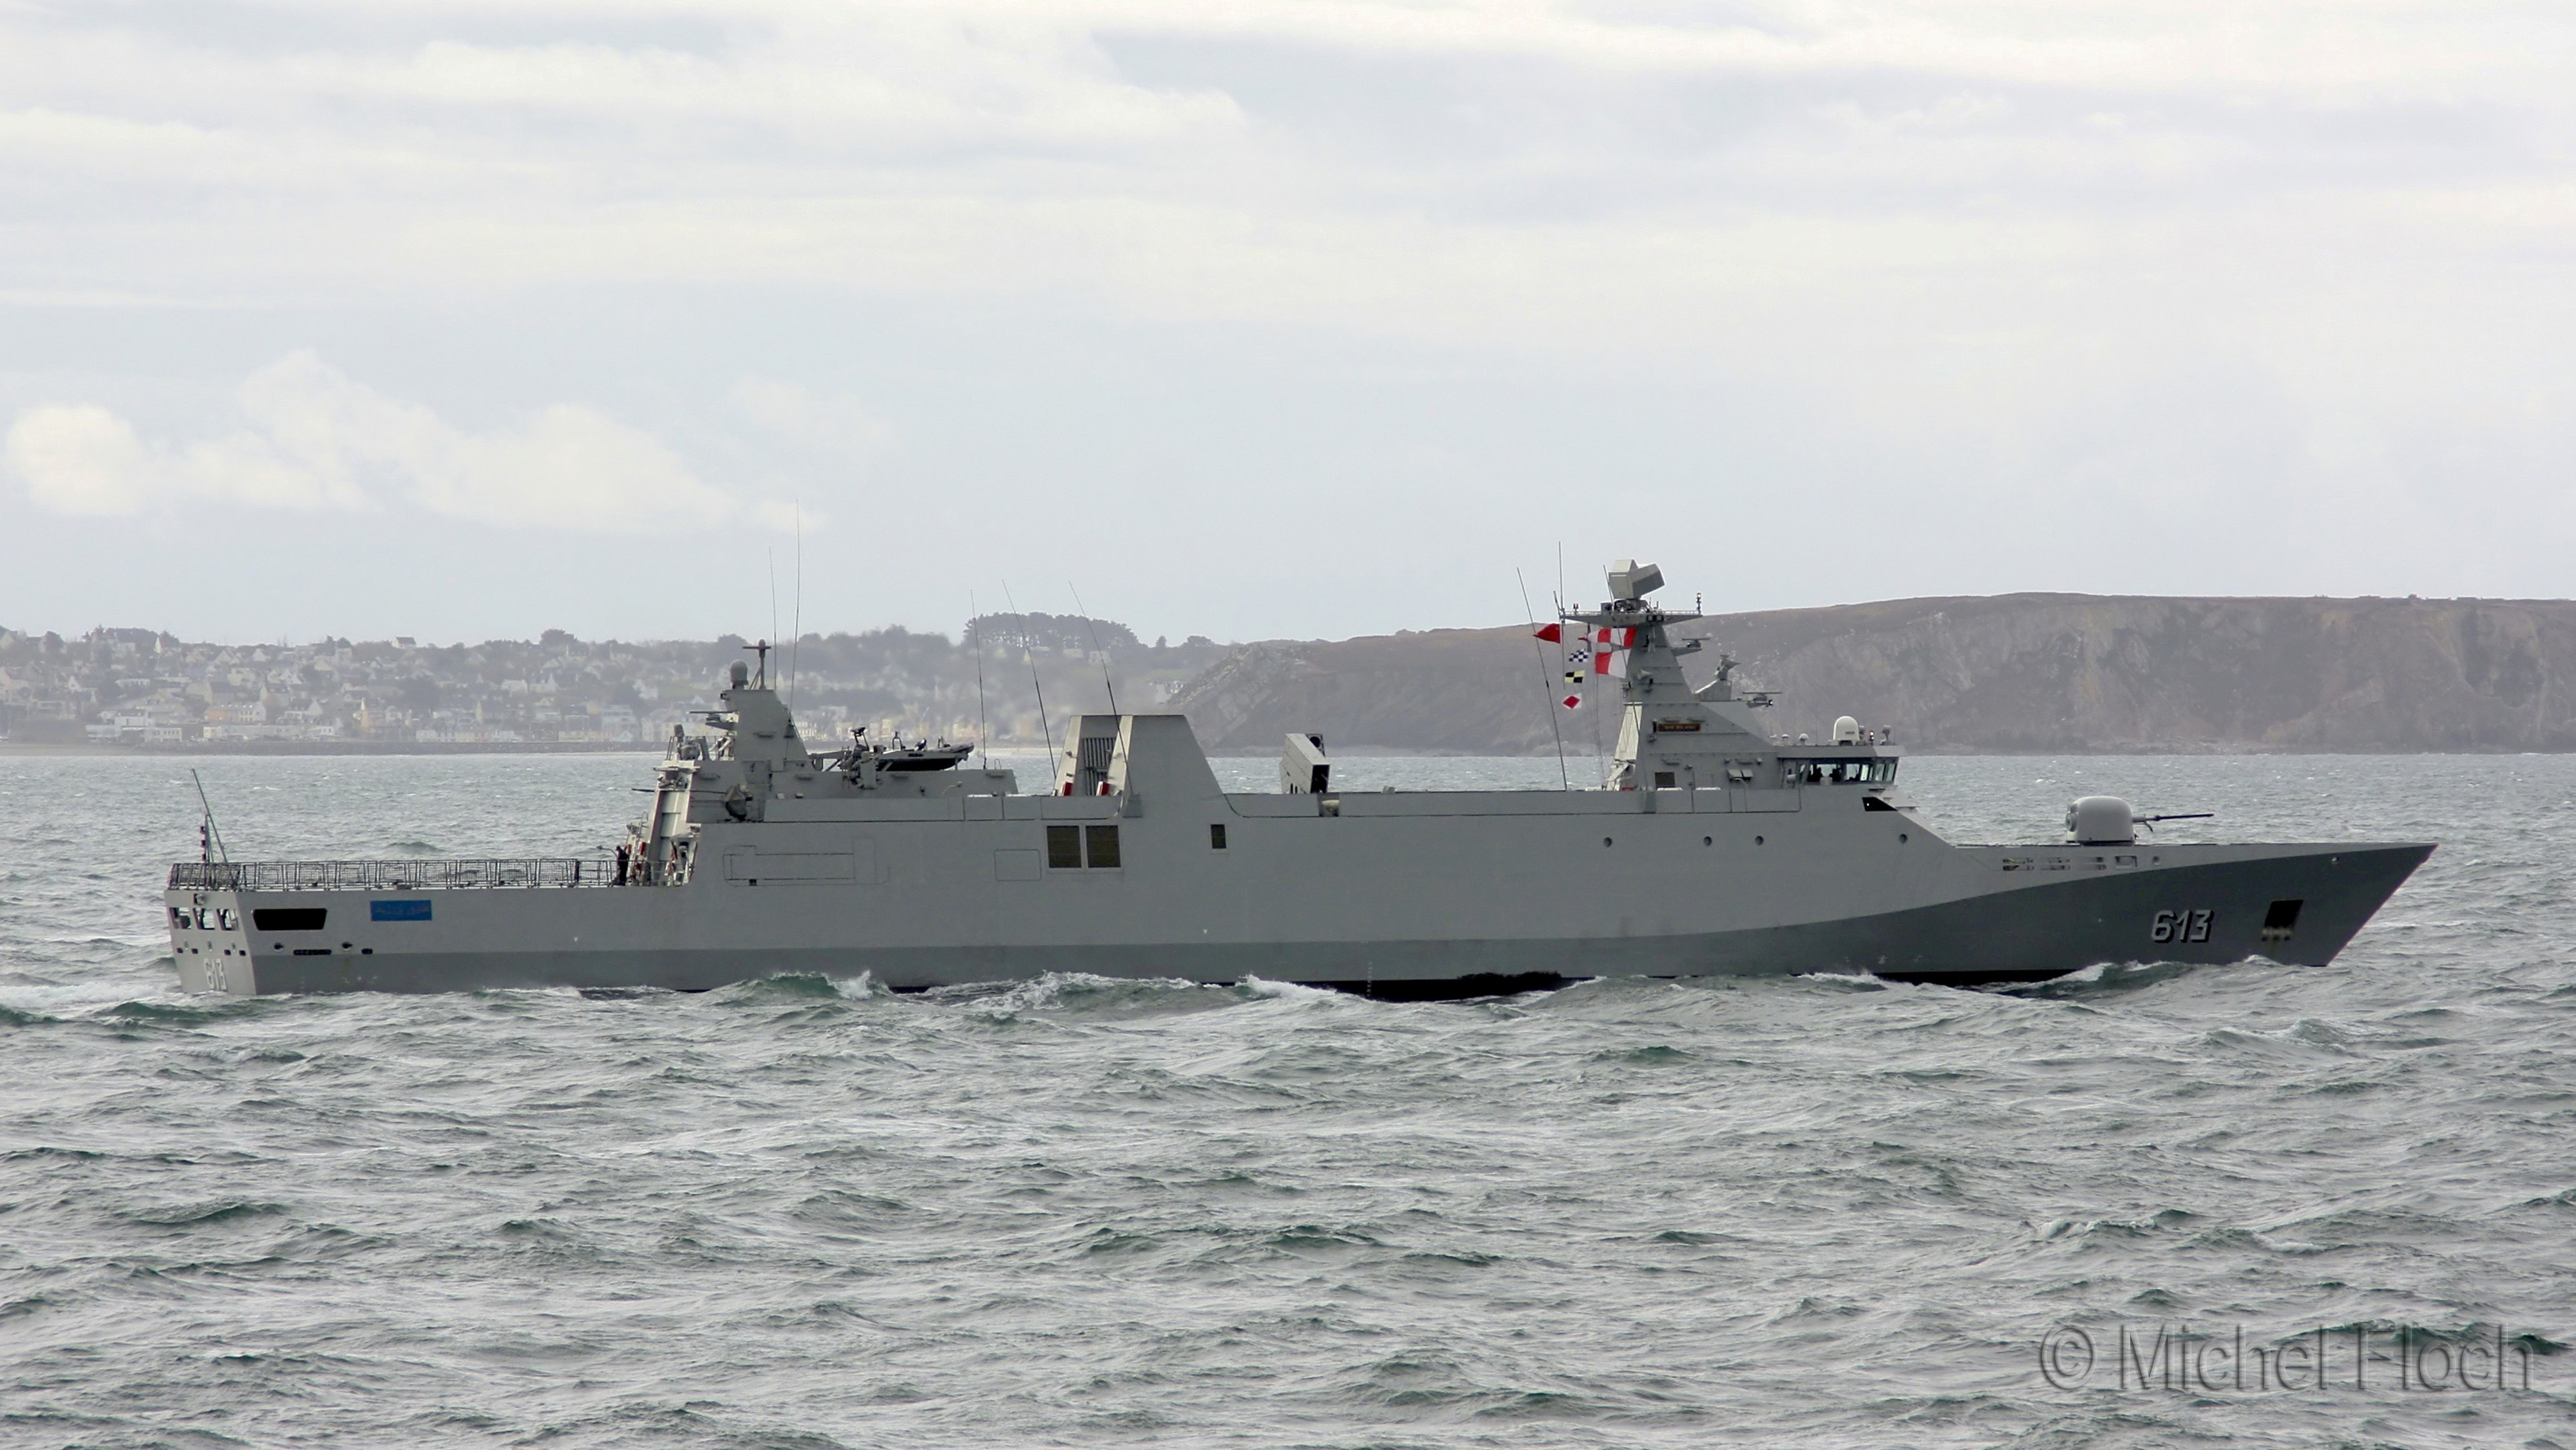 Royal Moroccan Navy Sigma class frigates / Frégates marocaines multimissions Sigma - Page 13 1773694